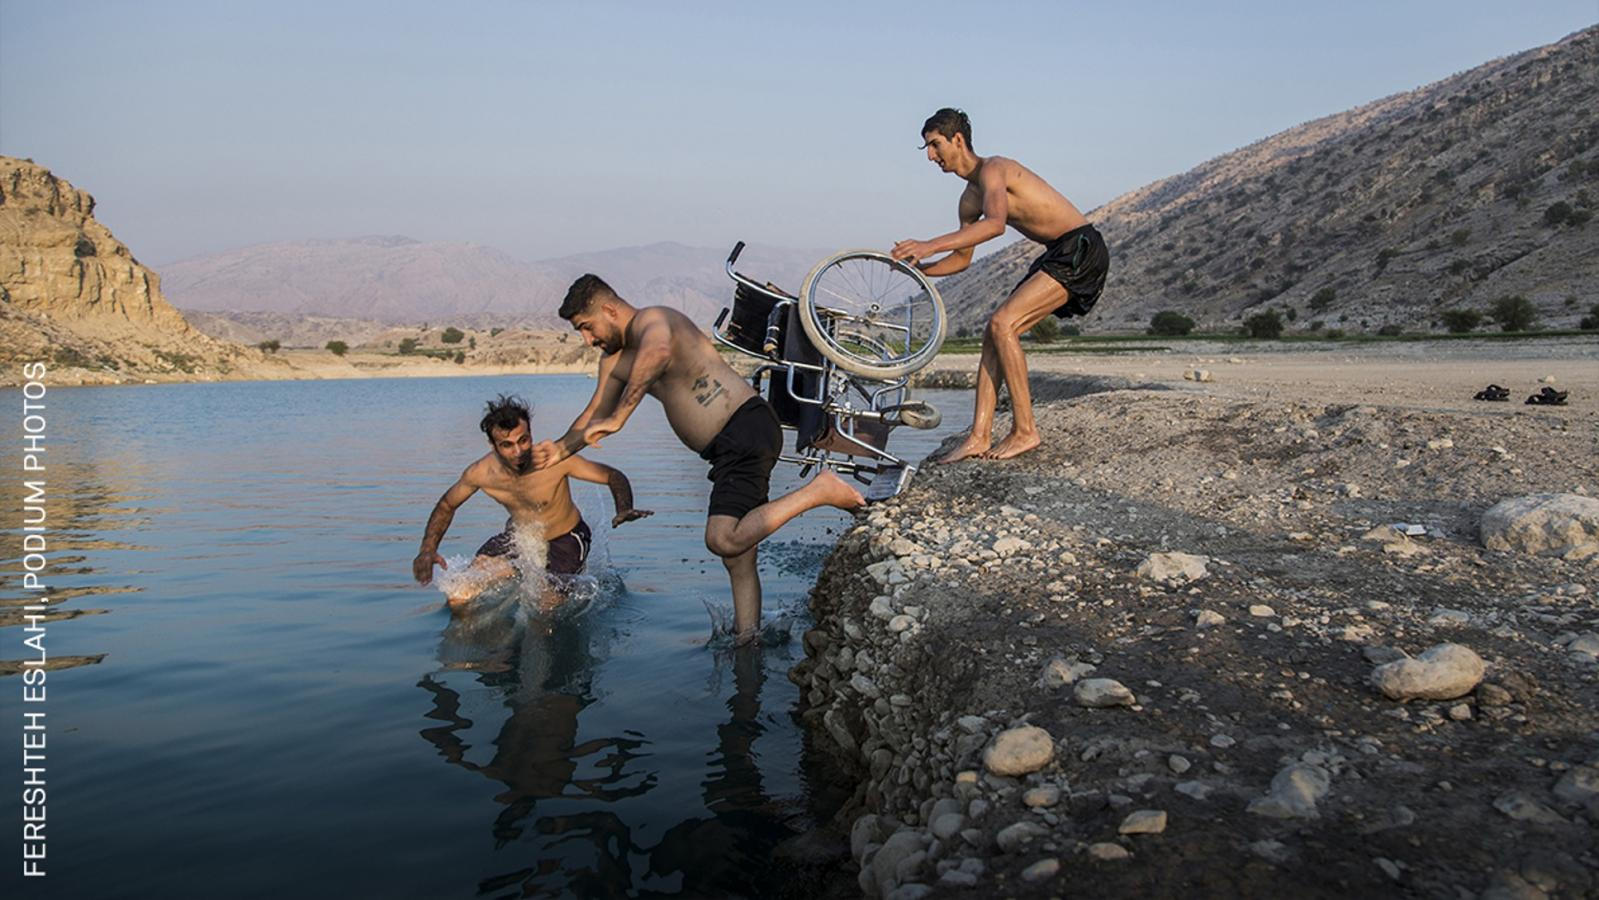 Nominace World Press Photo 2021 v kategorii Sport